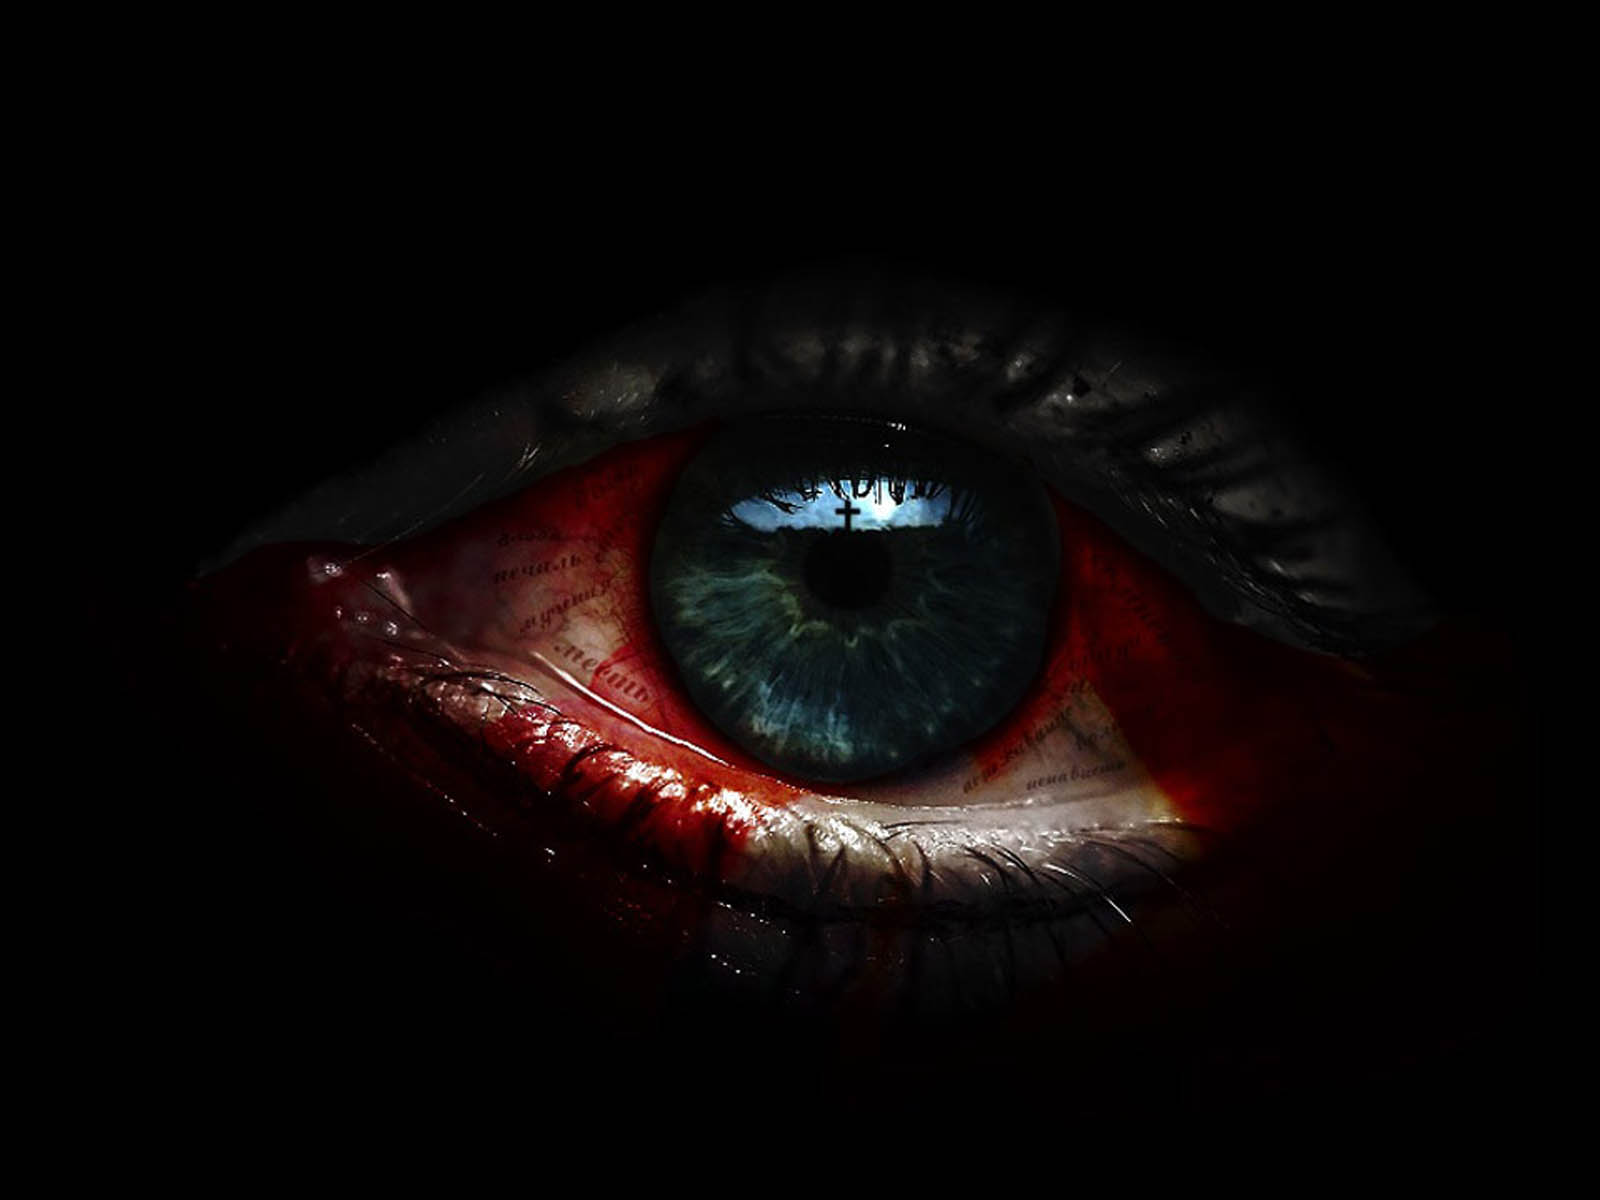 wallpaper horror eye wallpapers